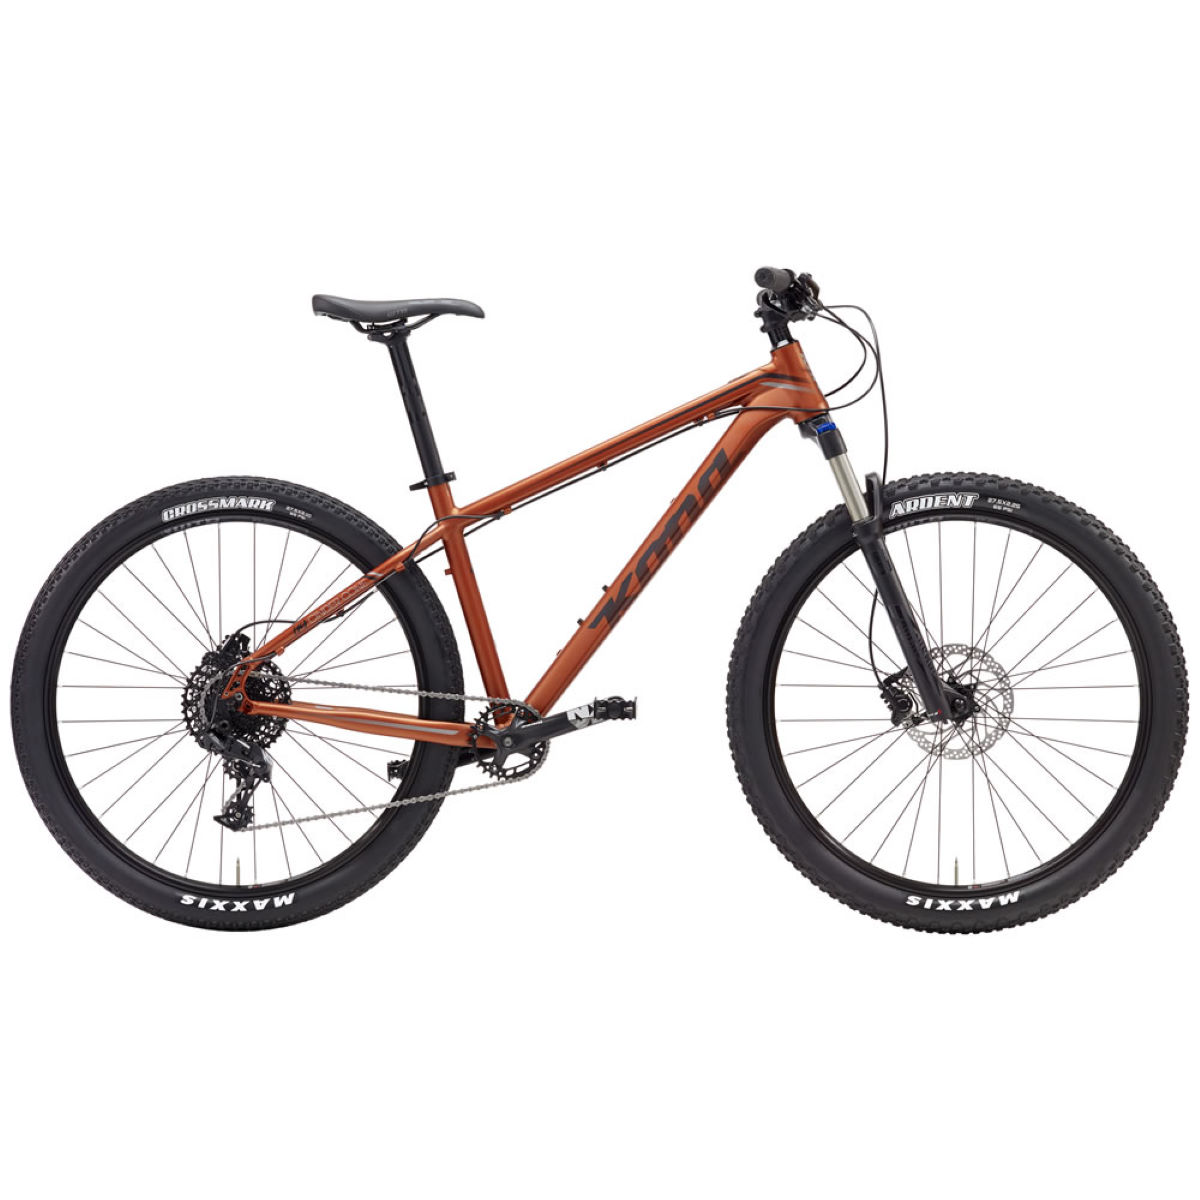 VTT Kona Cinder Cone (2017) - S Orange VTT semi-rigides